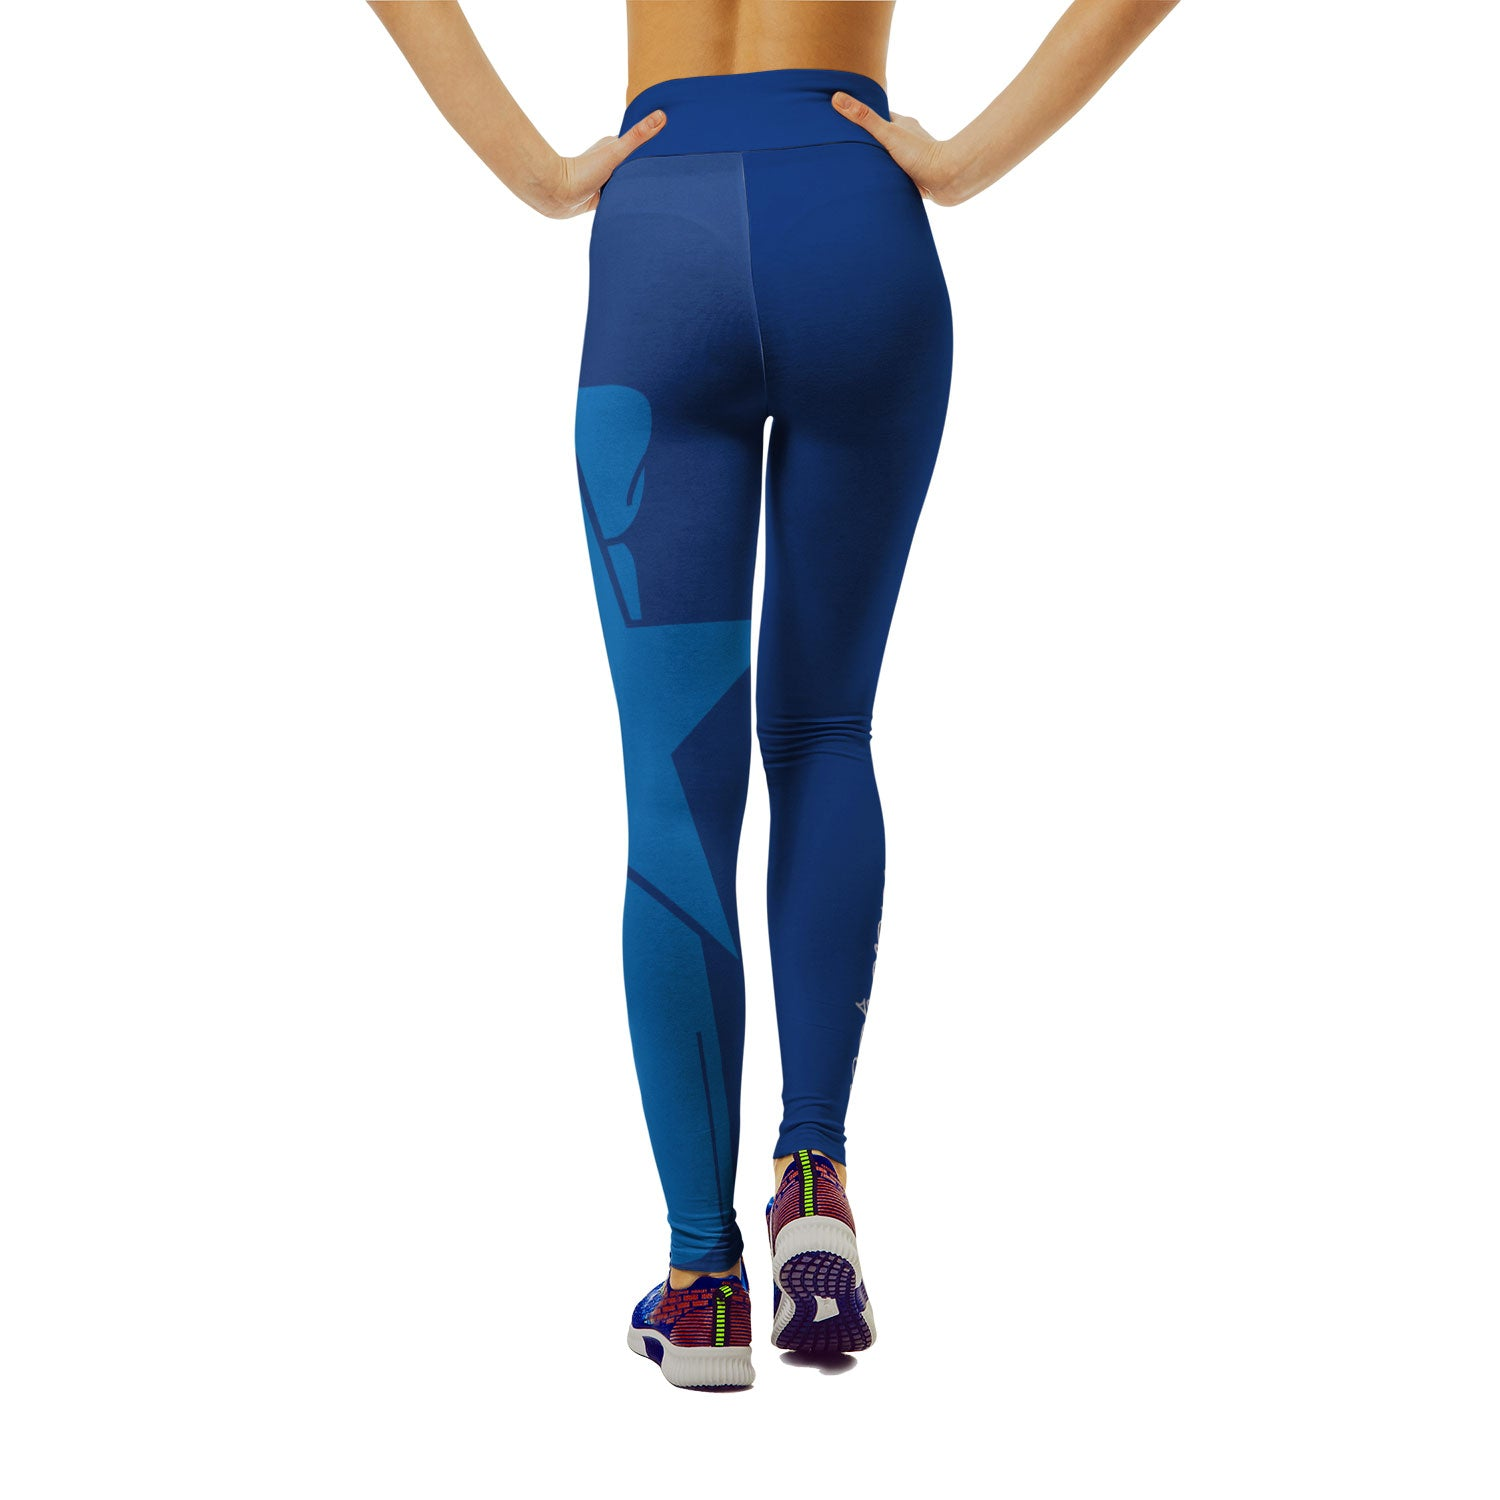 Island Girl CNMI Seal Blue Yoga Leggings